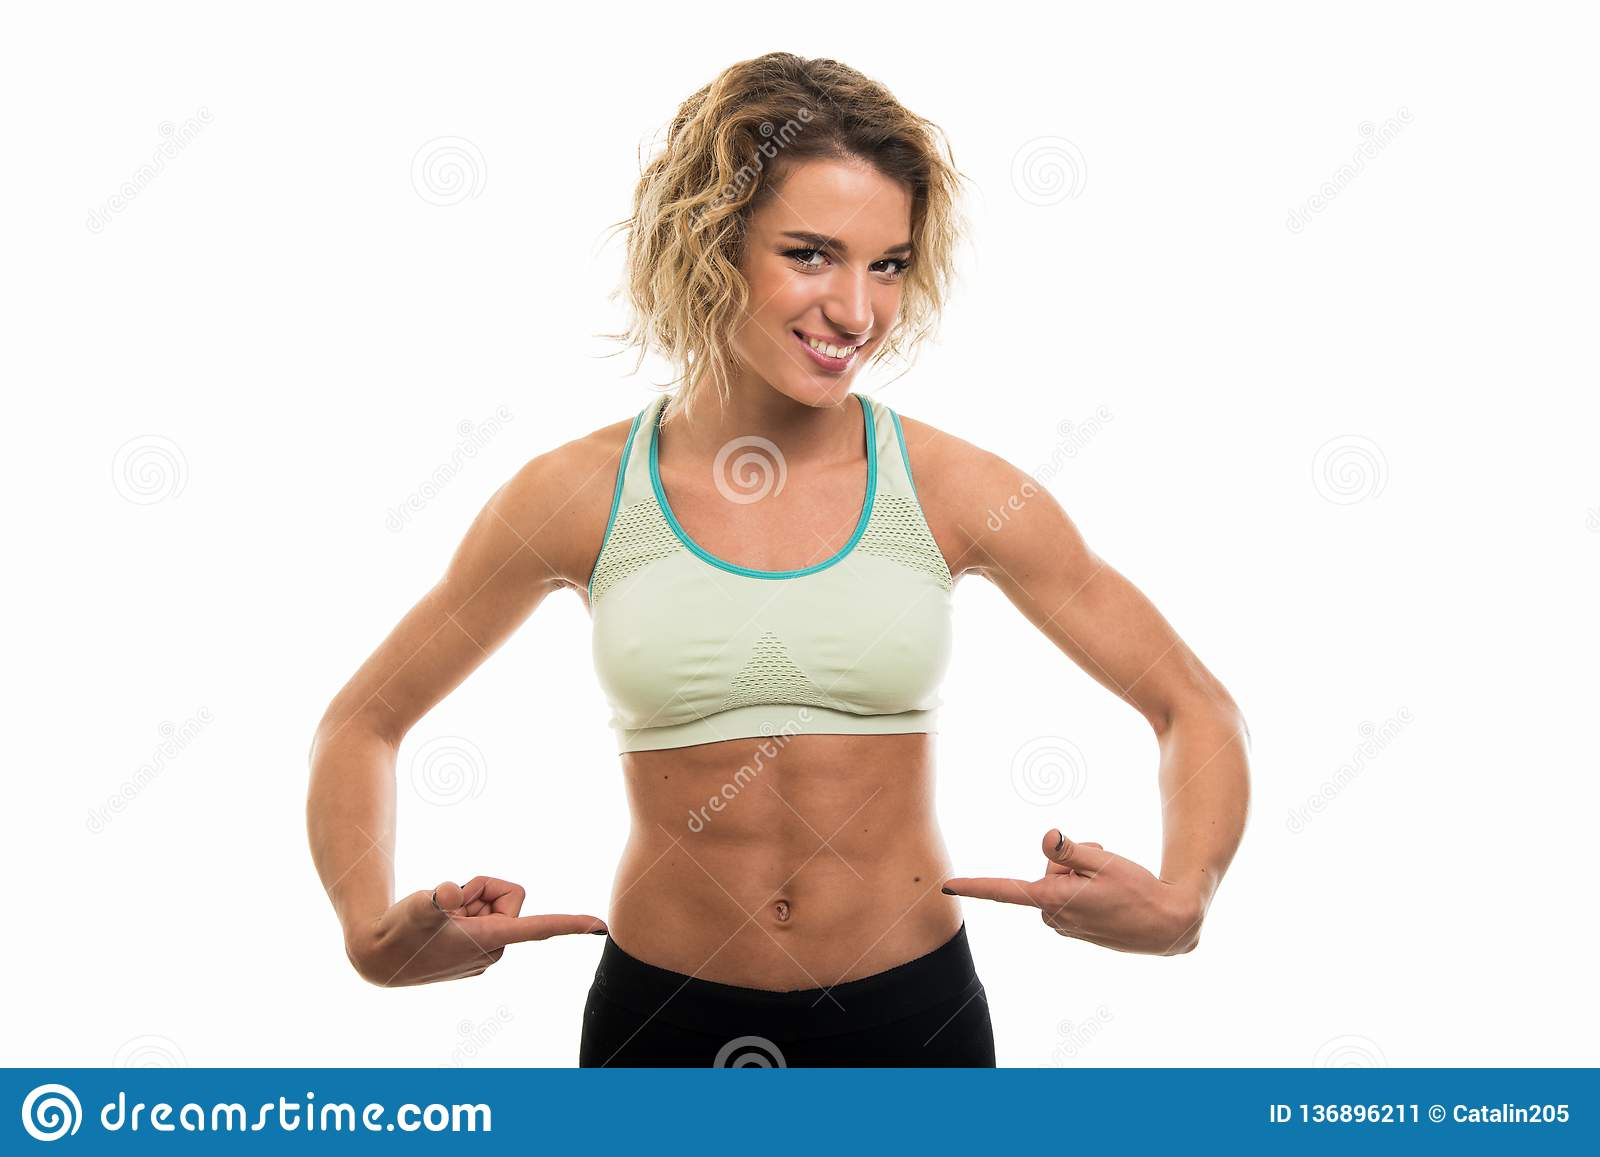 1 091 Fitness Six Pack Girl Photos Free Royalty Free Stock Photos From Dreamstime Comfort fit includes arch support for a better fit around the foot. https www dreamstime com portrait fit girl showing her six pack isolated white background copy space advertising area image136896211